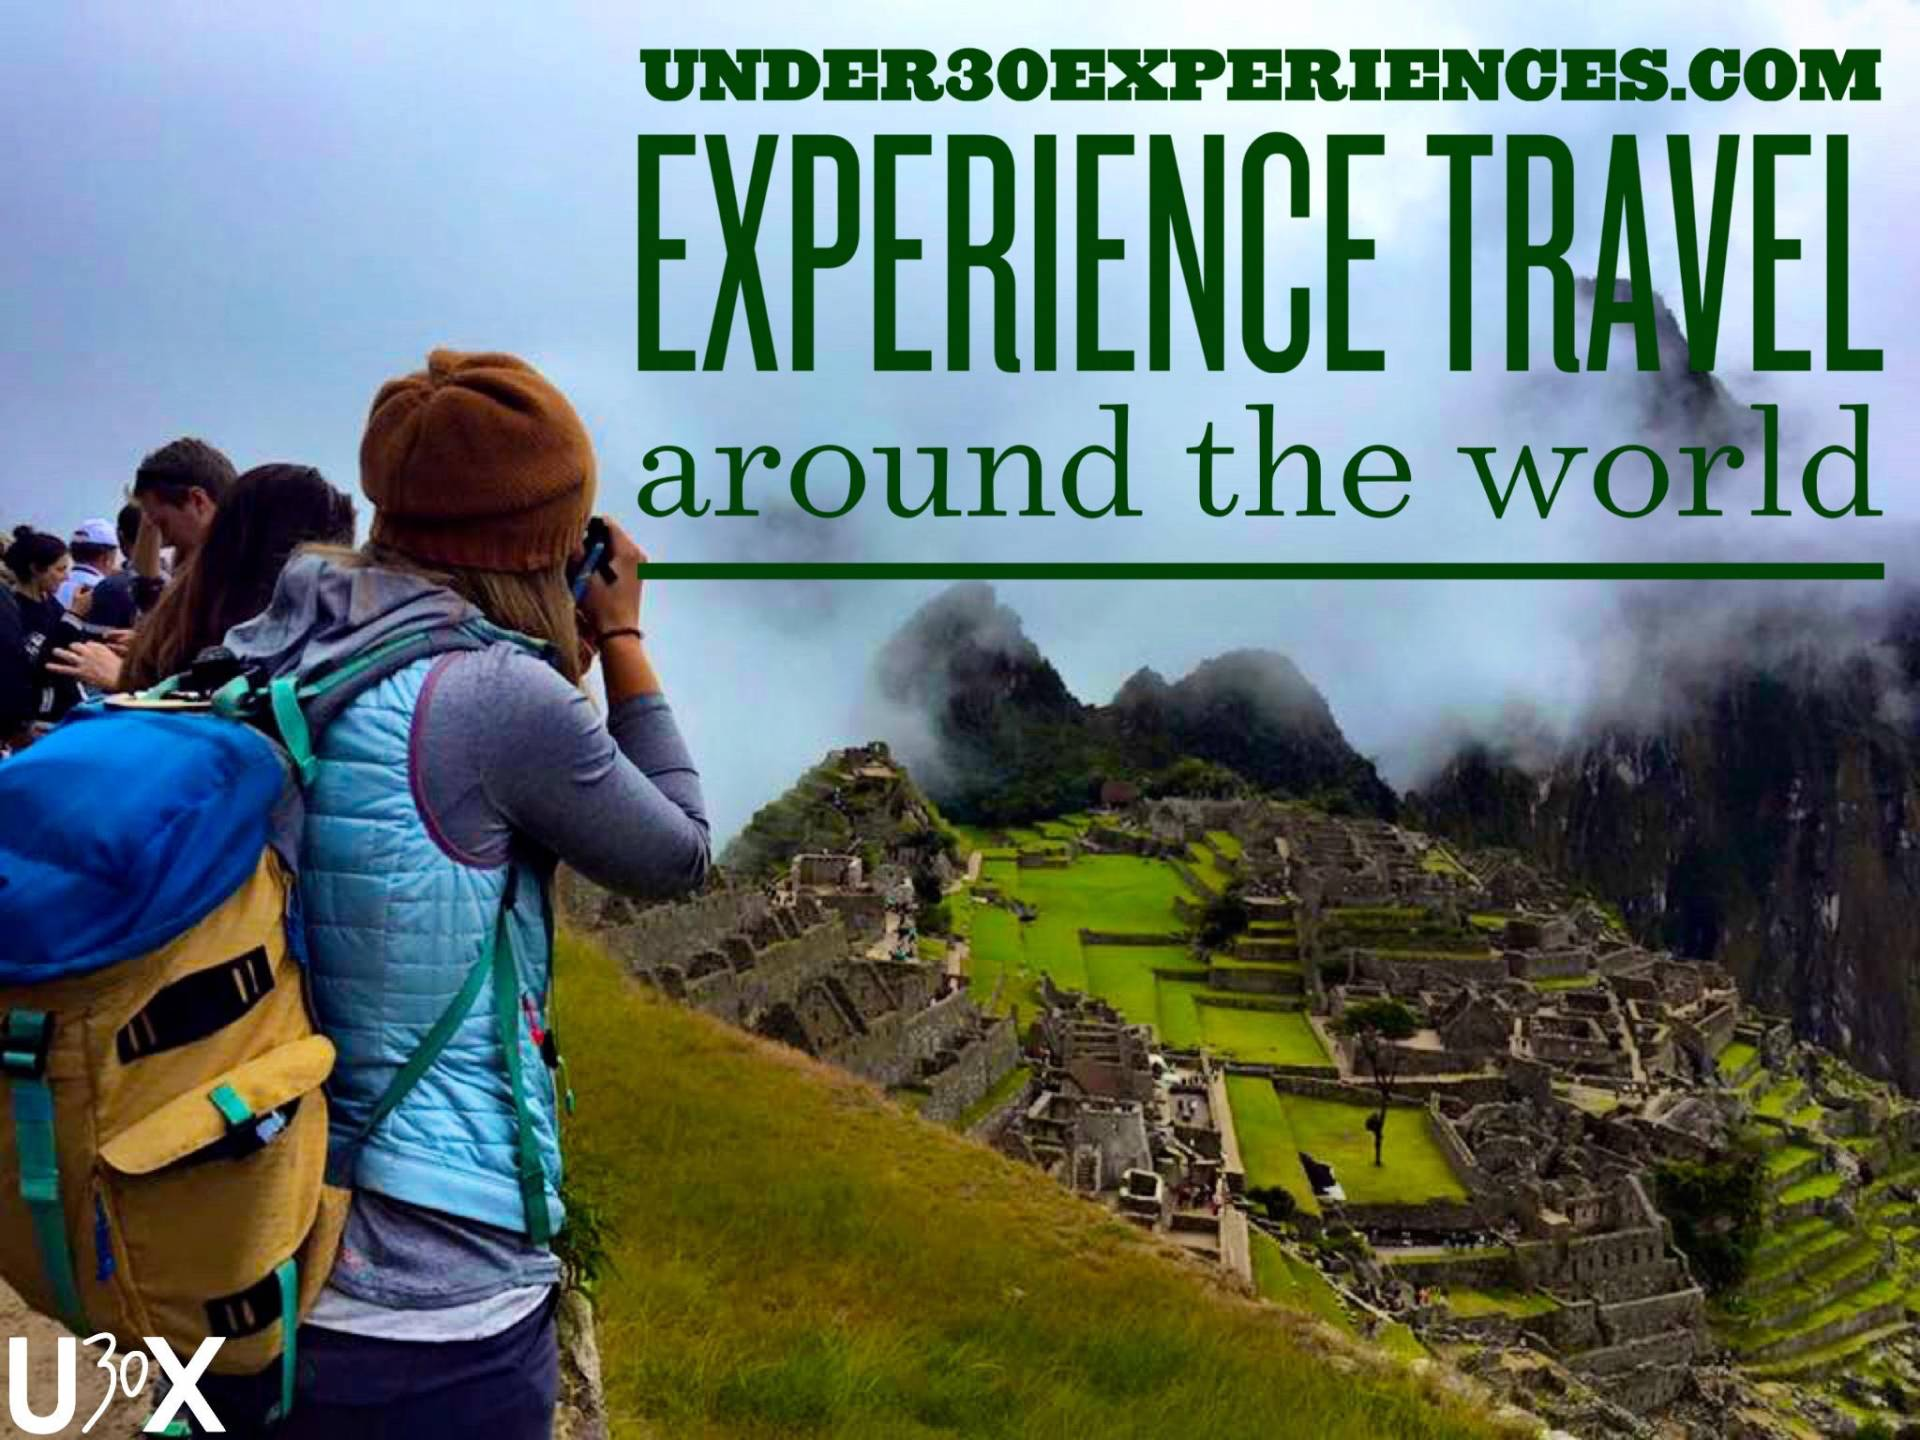 Group Travel for Young Adults